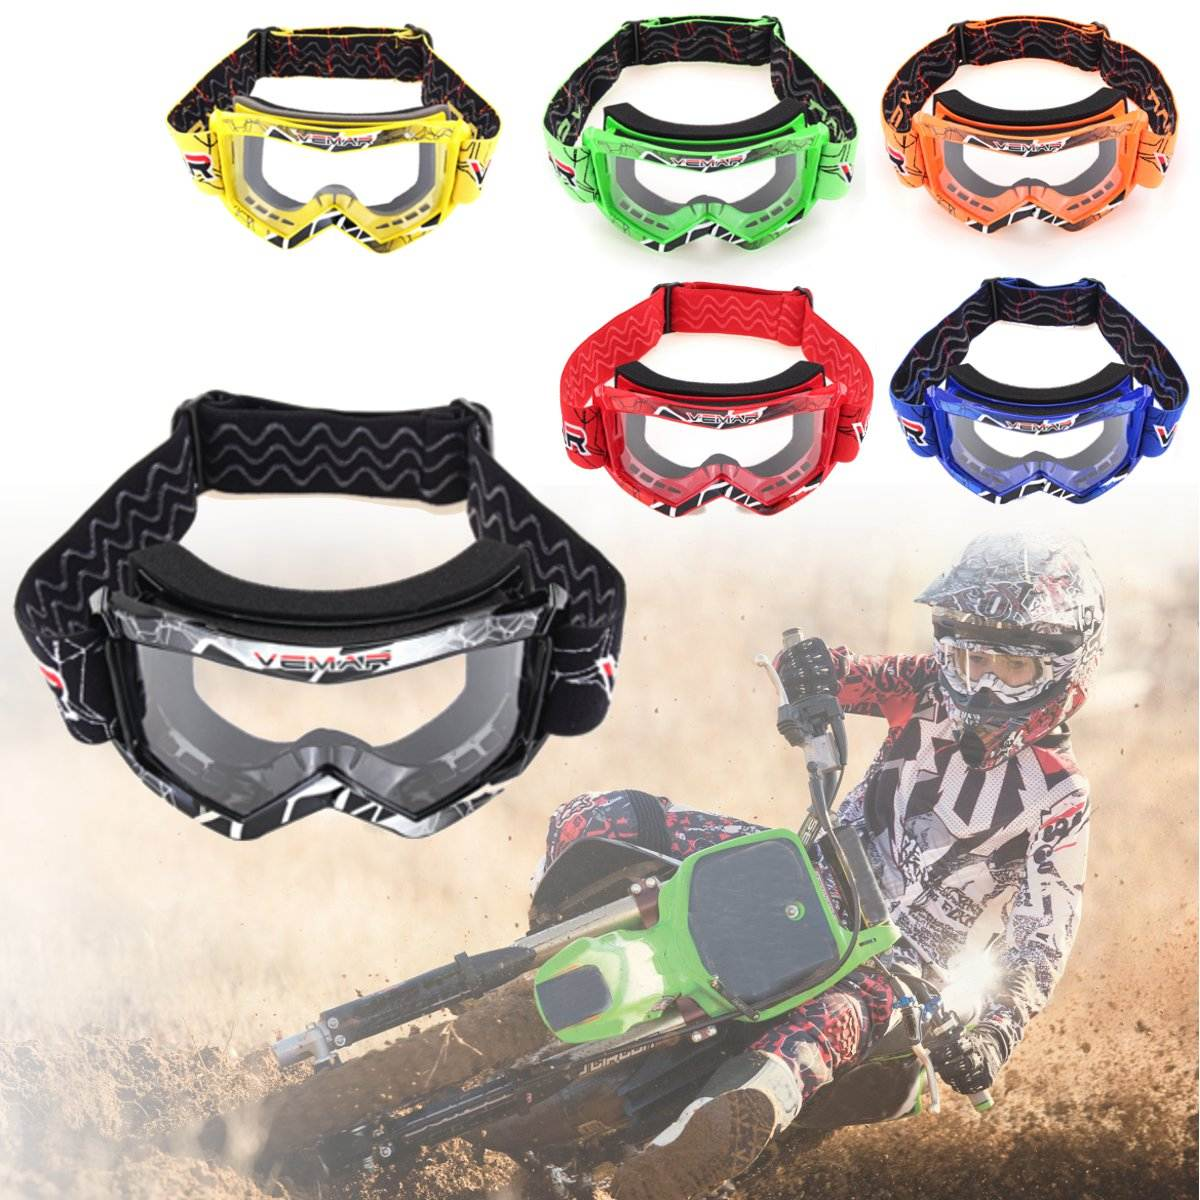 Children Kids Cool Goggles Off Road Motorcycle Motocross Racing Dirt Bike Anti-UV Eyewear New Adjustable Flexible Protect Face crf50 frame battery box dirt pit bike case holder off road motorcycle apollo 110 chinese motocross